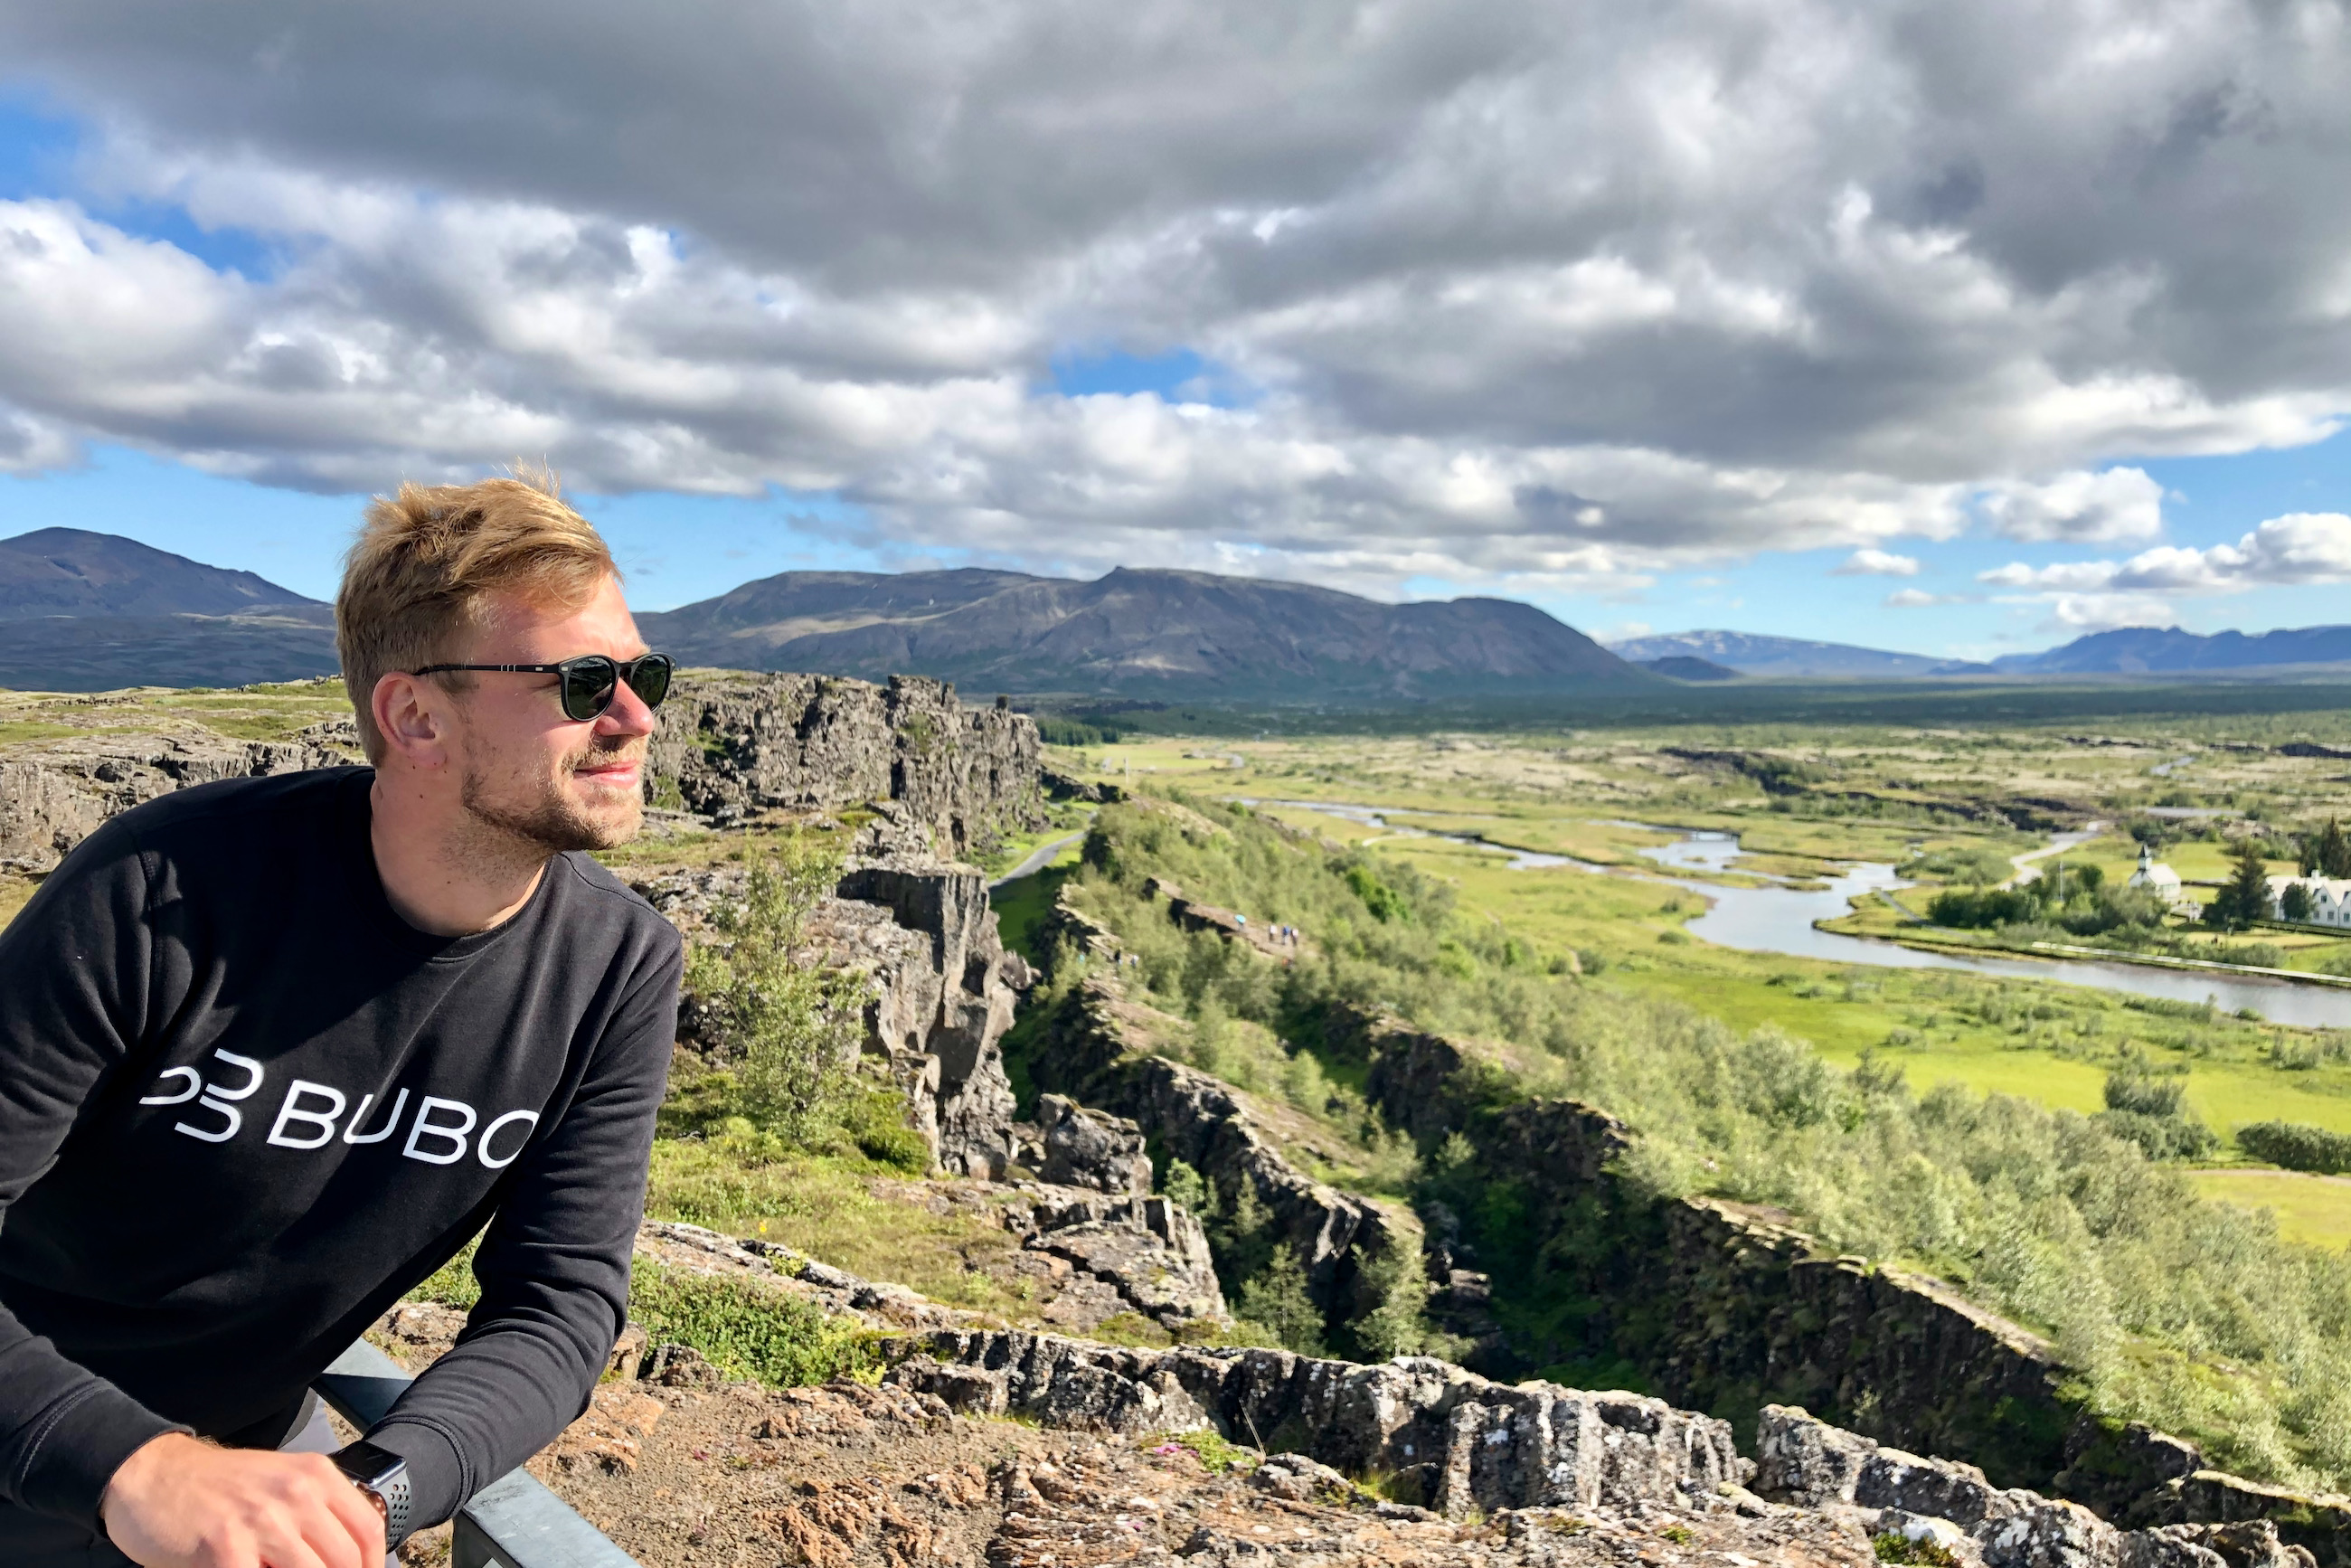 https://bubo.sk/uploads/galleries/7536/robert_taraba_thingvellir_island.jpeg